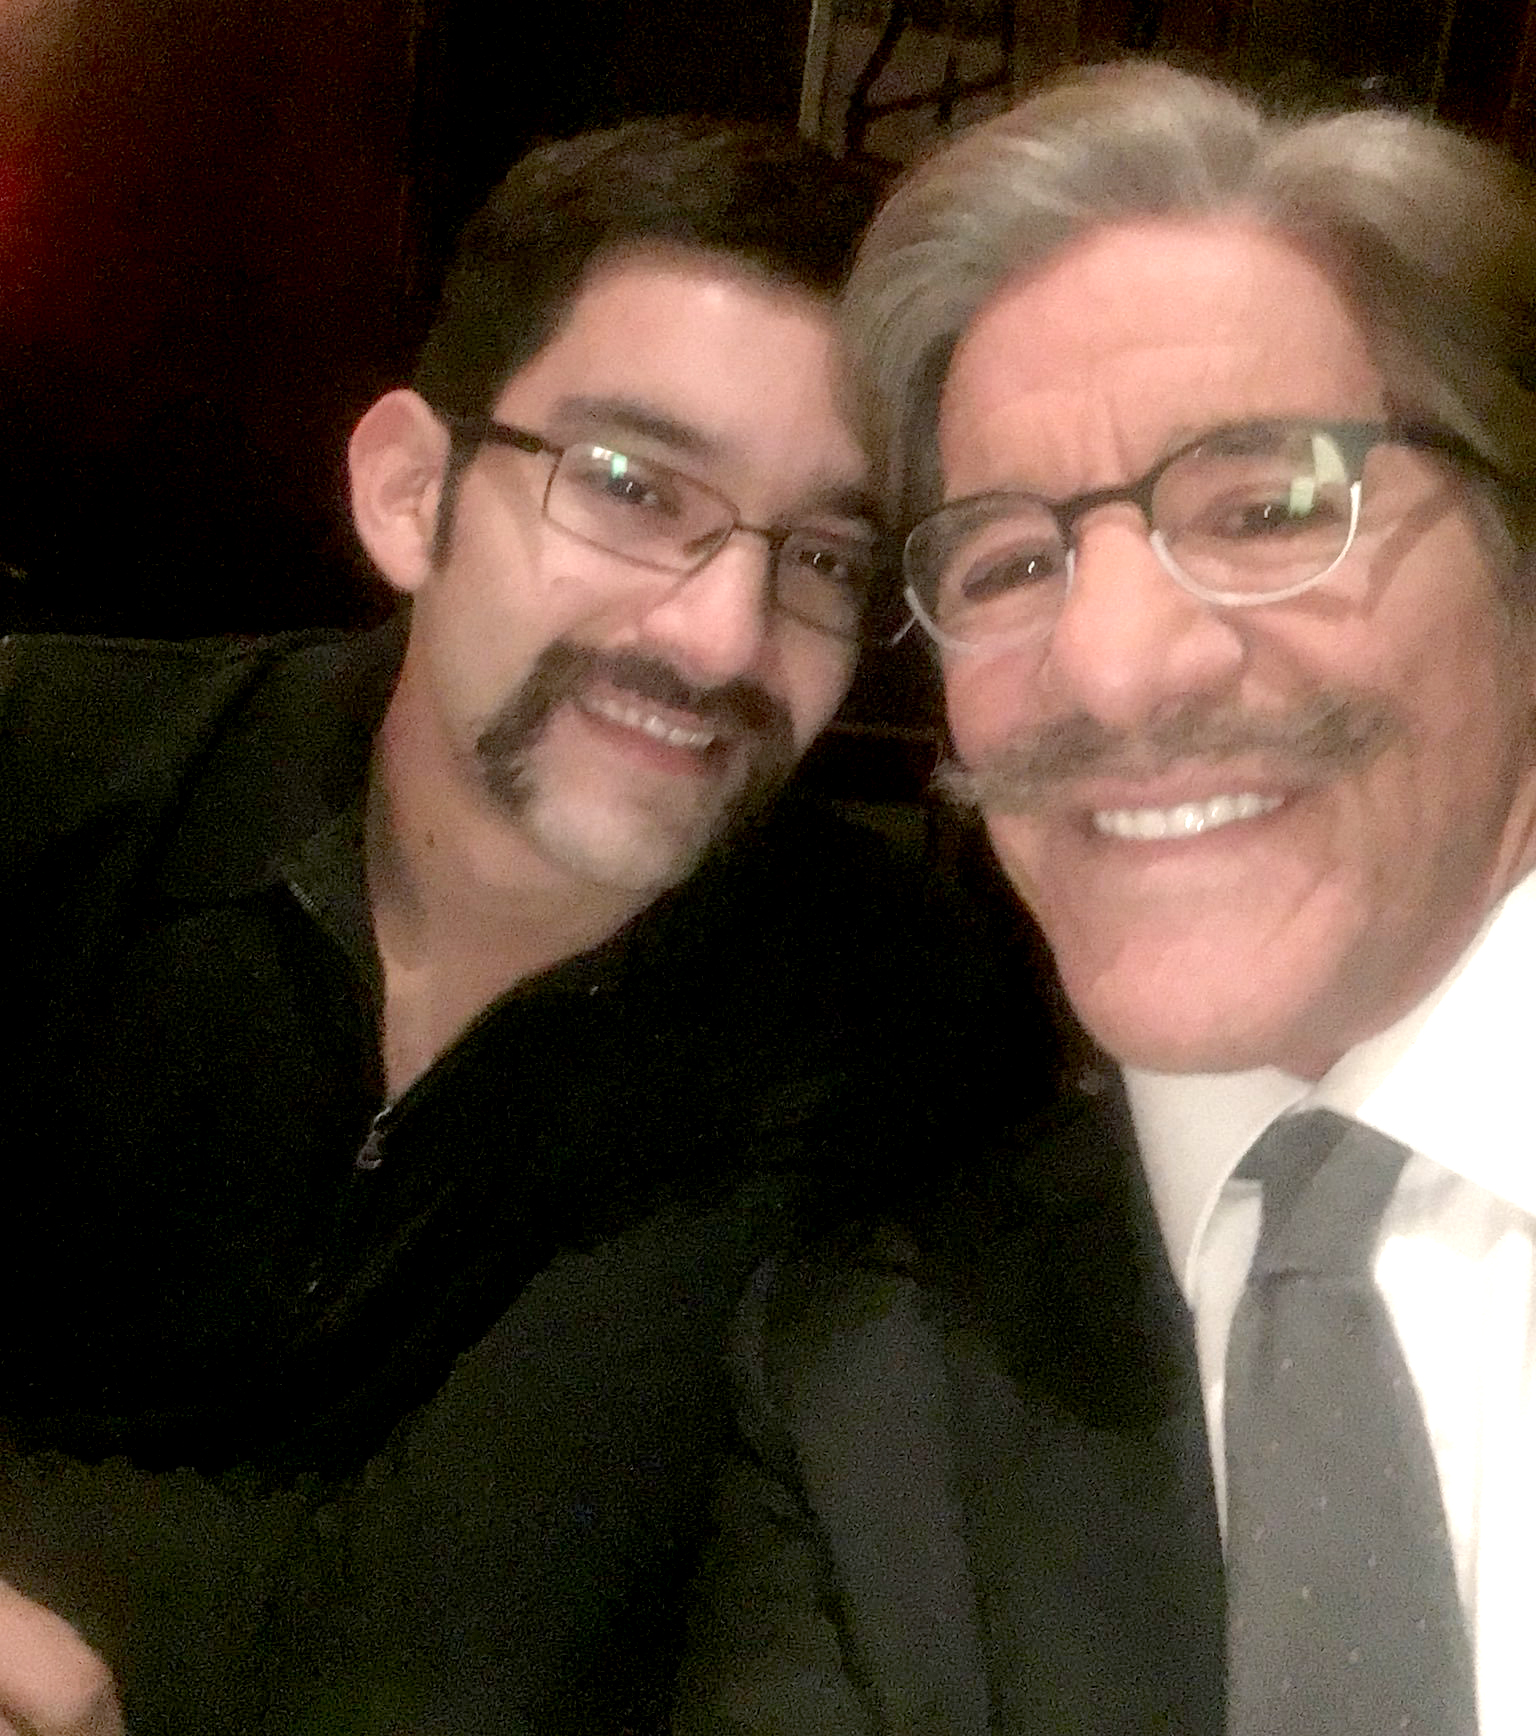 Geraldo Rivera 'very, very upset' with son's arrest: lawyer